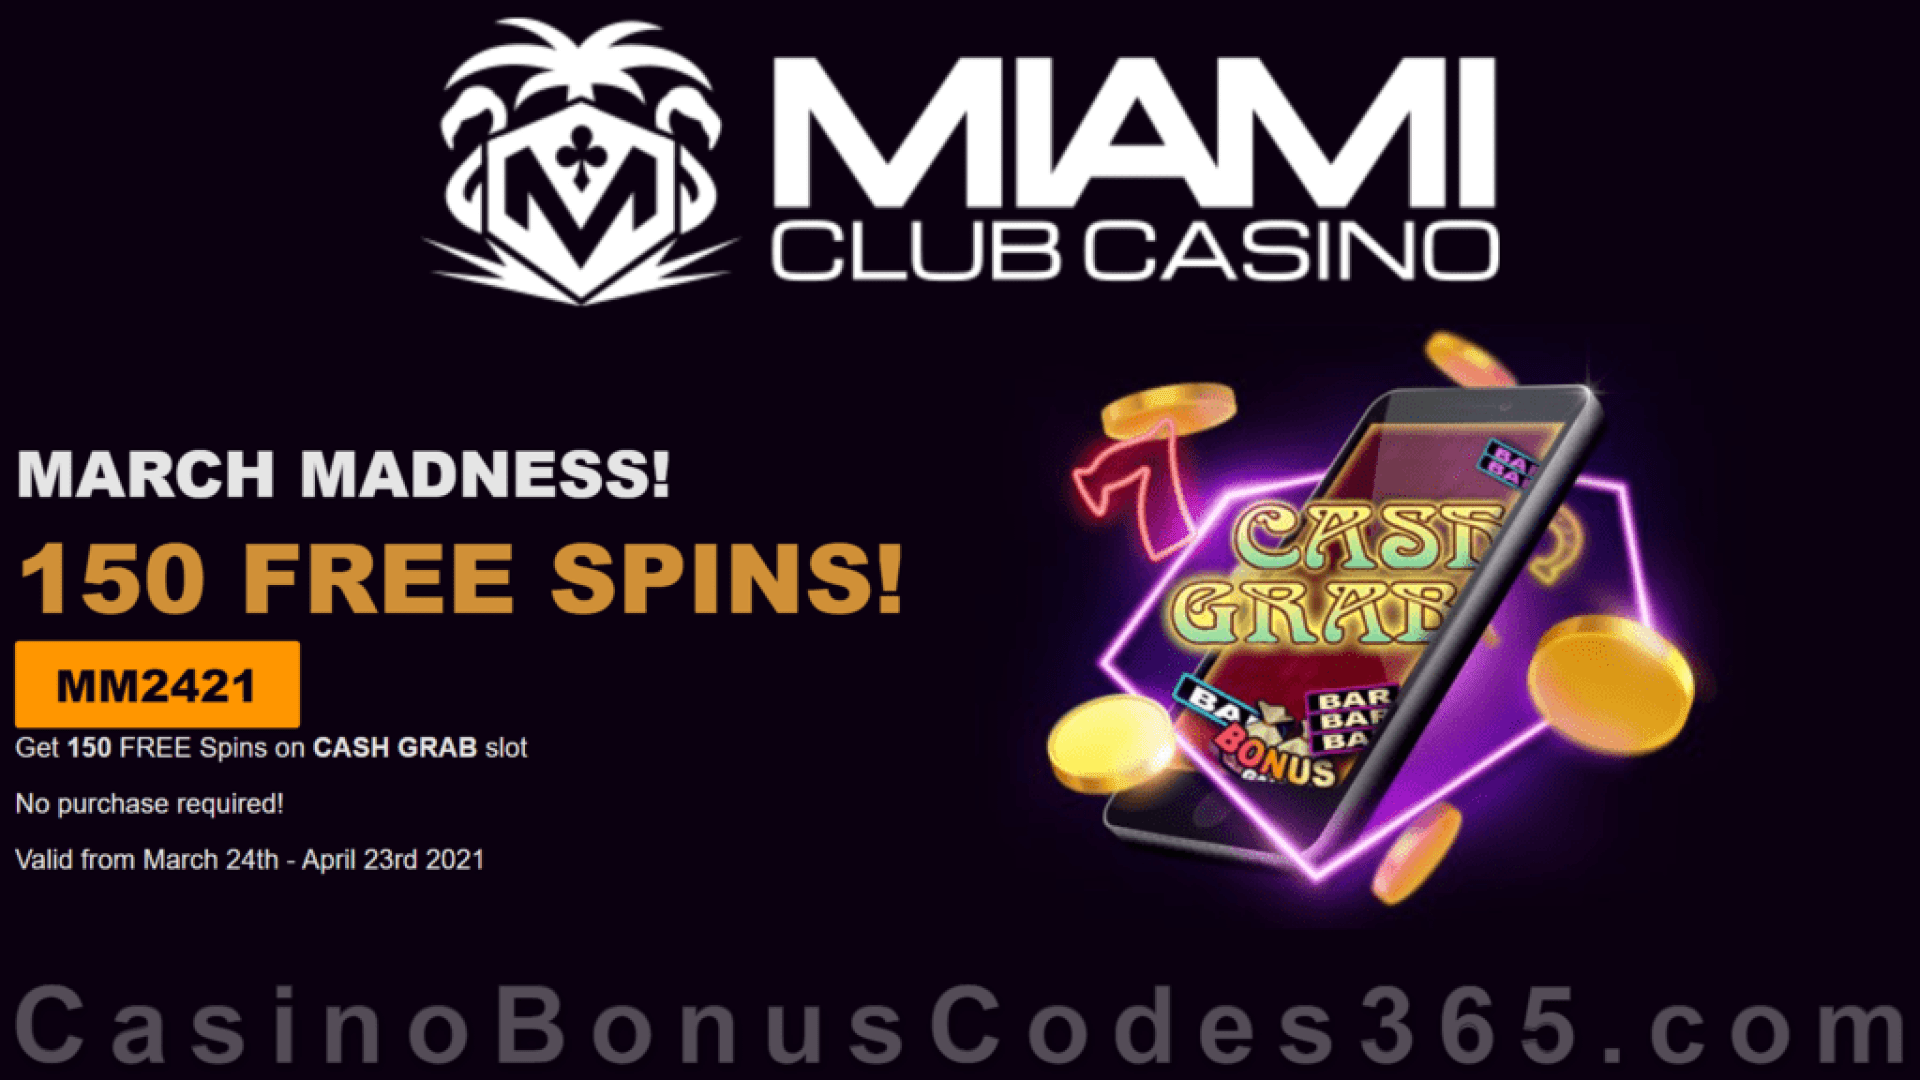 Miami Club Casino 150 FREE WGS Cash Grab Spins March Madness Week 3 Massive No Deposit Offer